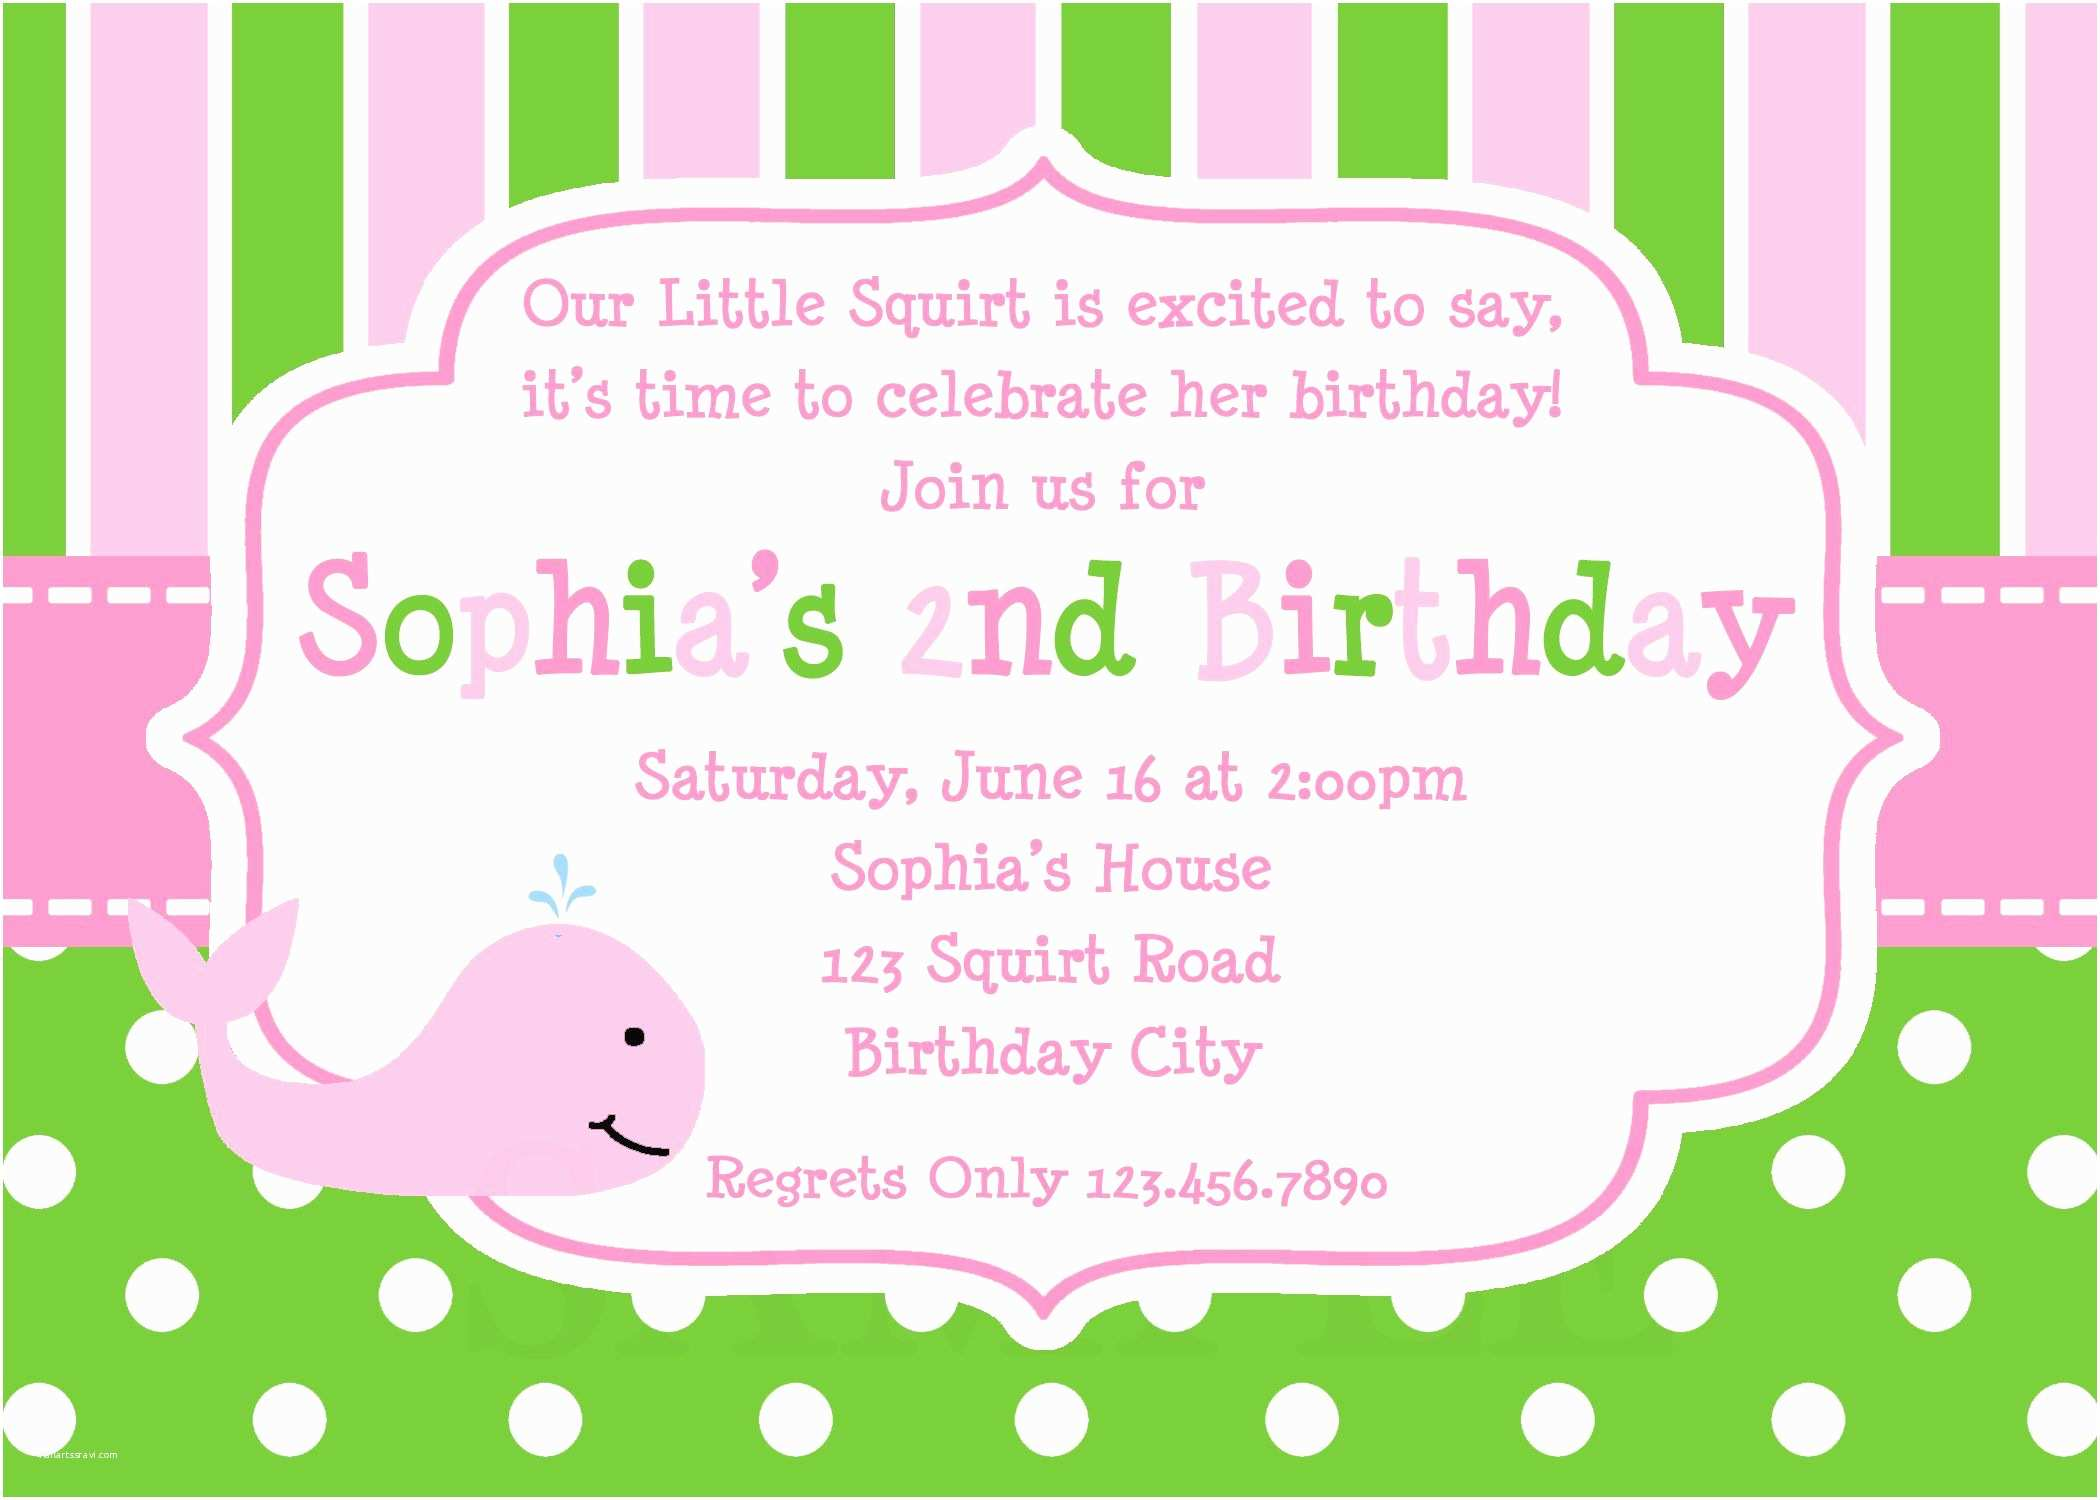 Party Invitation Text Message 21 Kids Birthday Invitation Wording that We Can Make